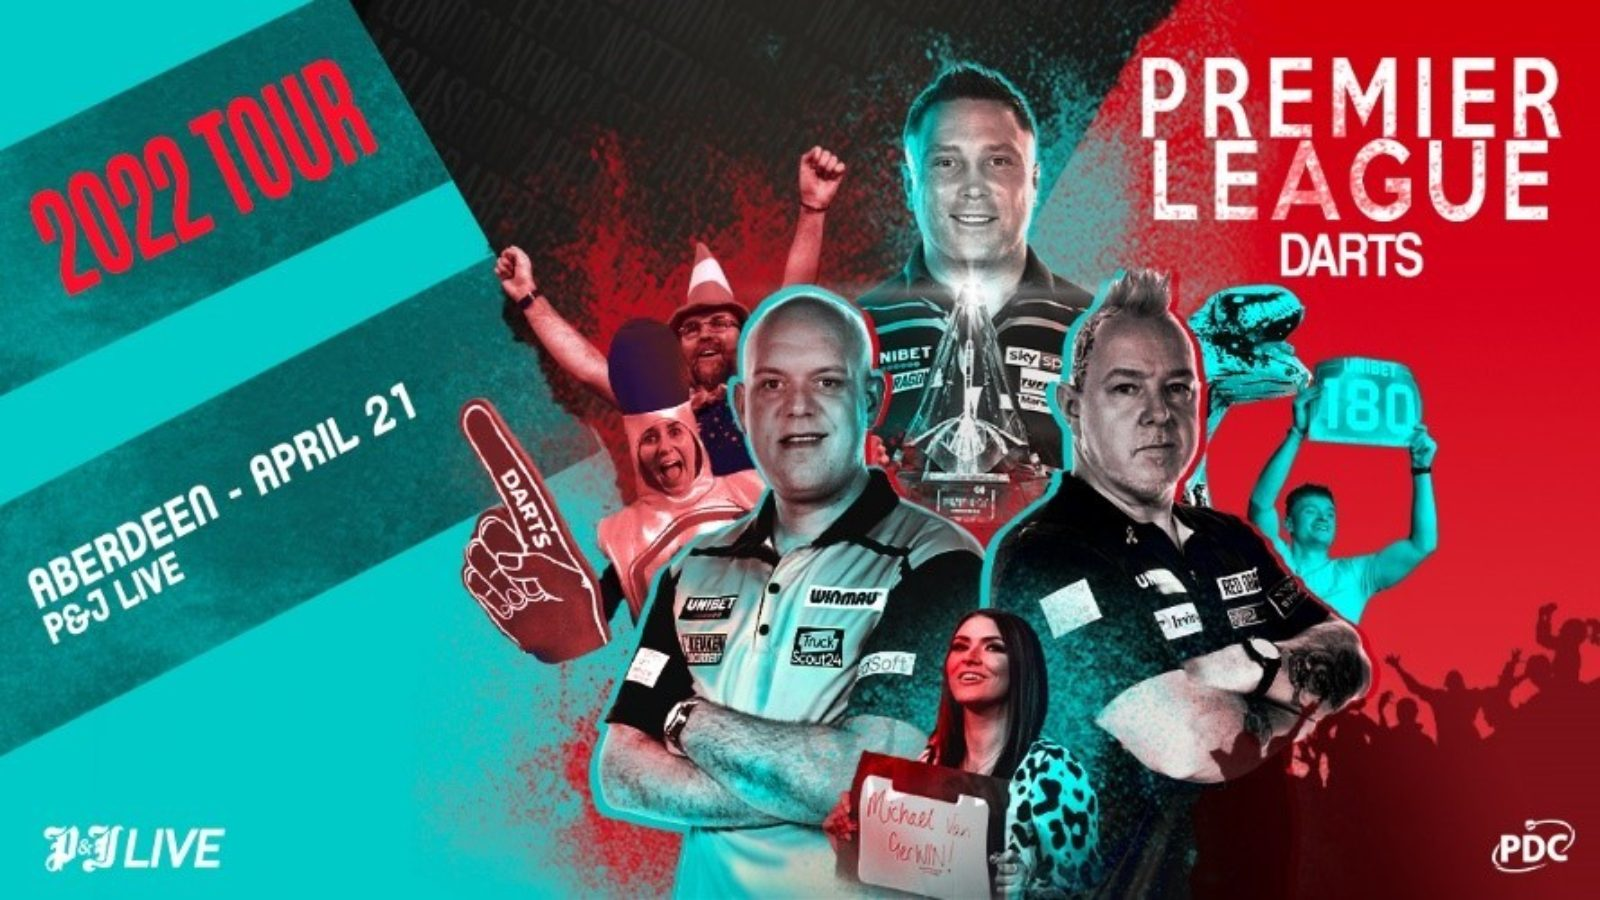 Premier League darts to return to Aberdeen on April 21 2022